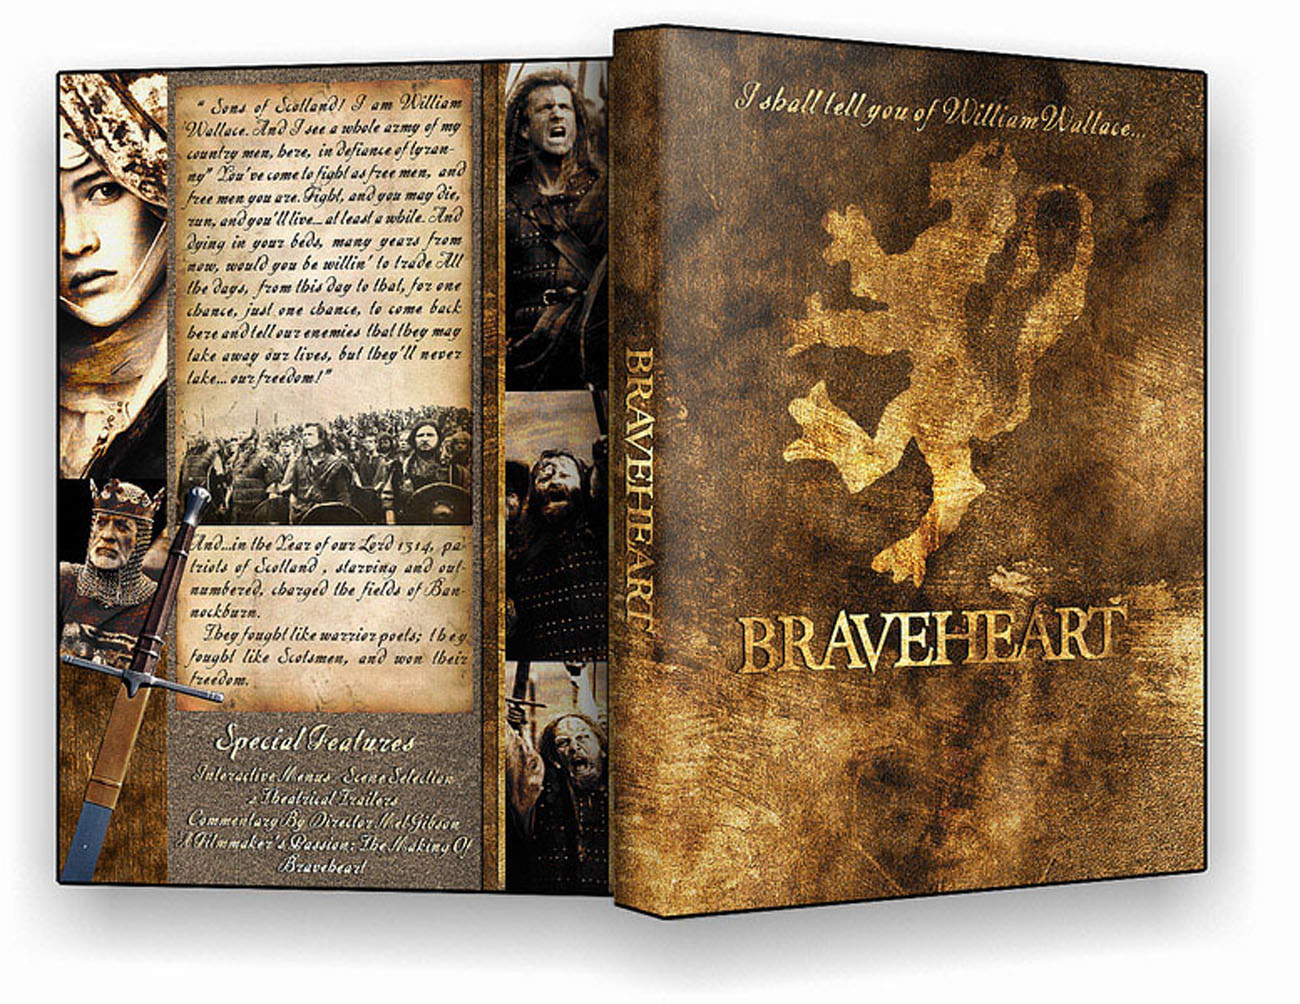 Braveheart Dvd Case Box